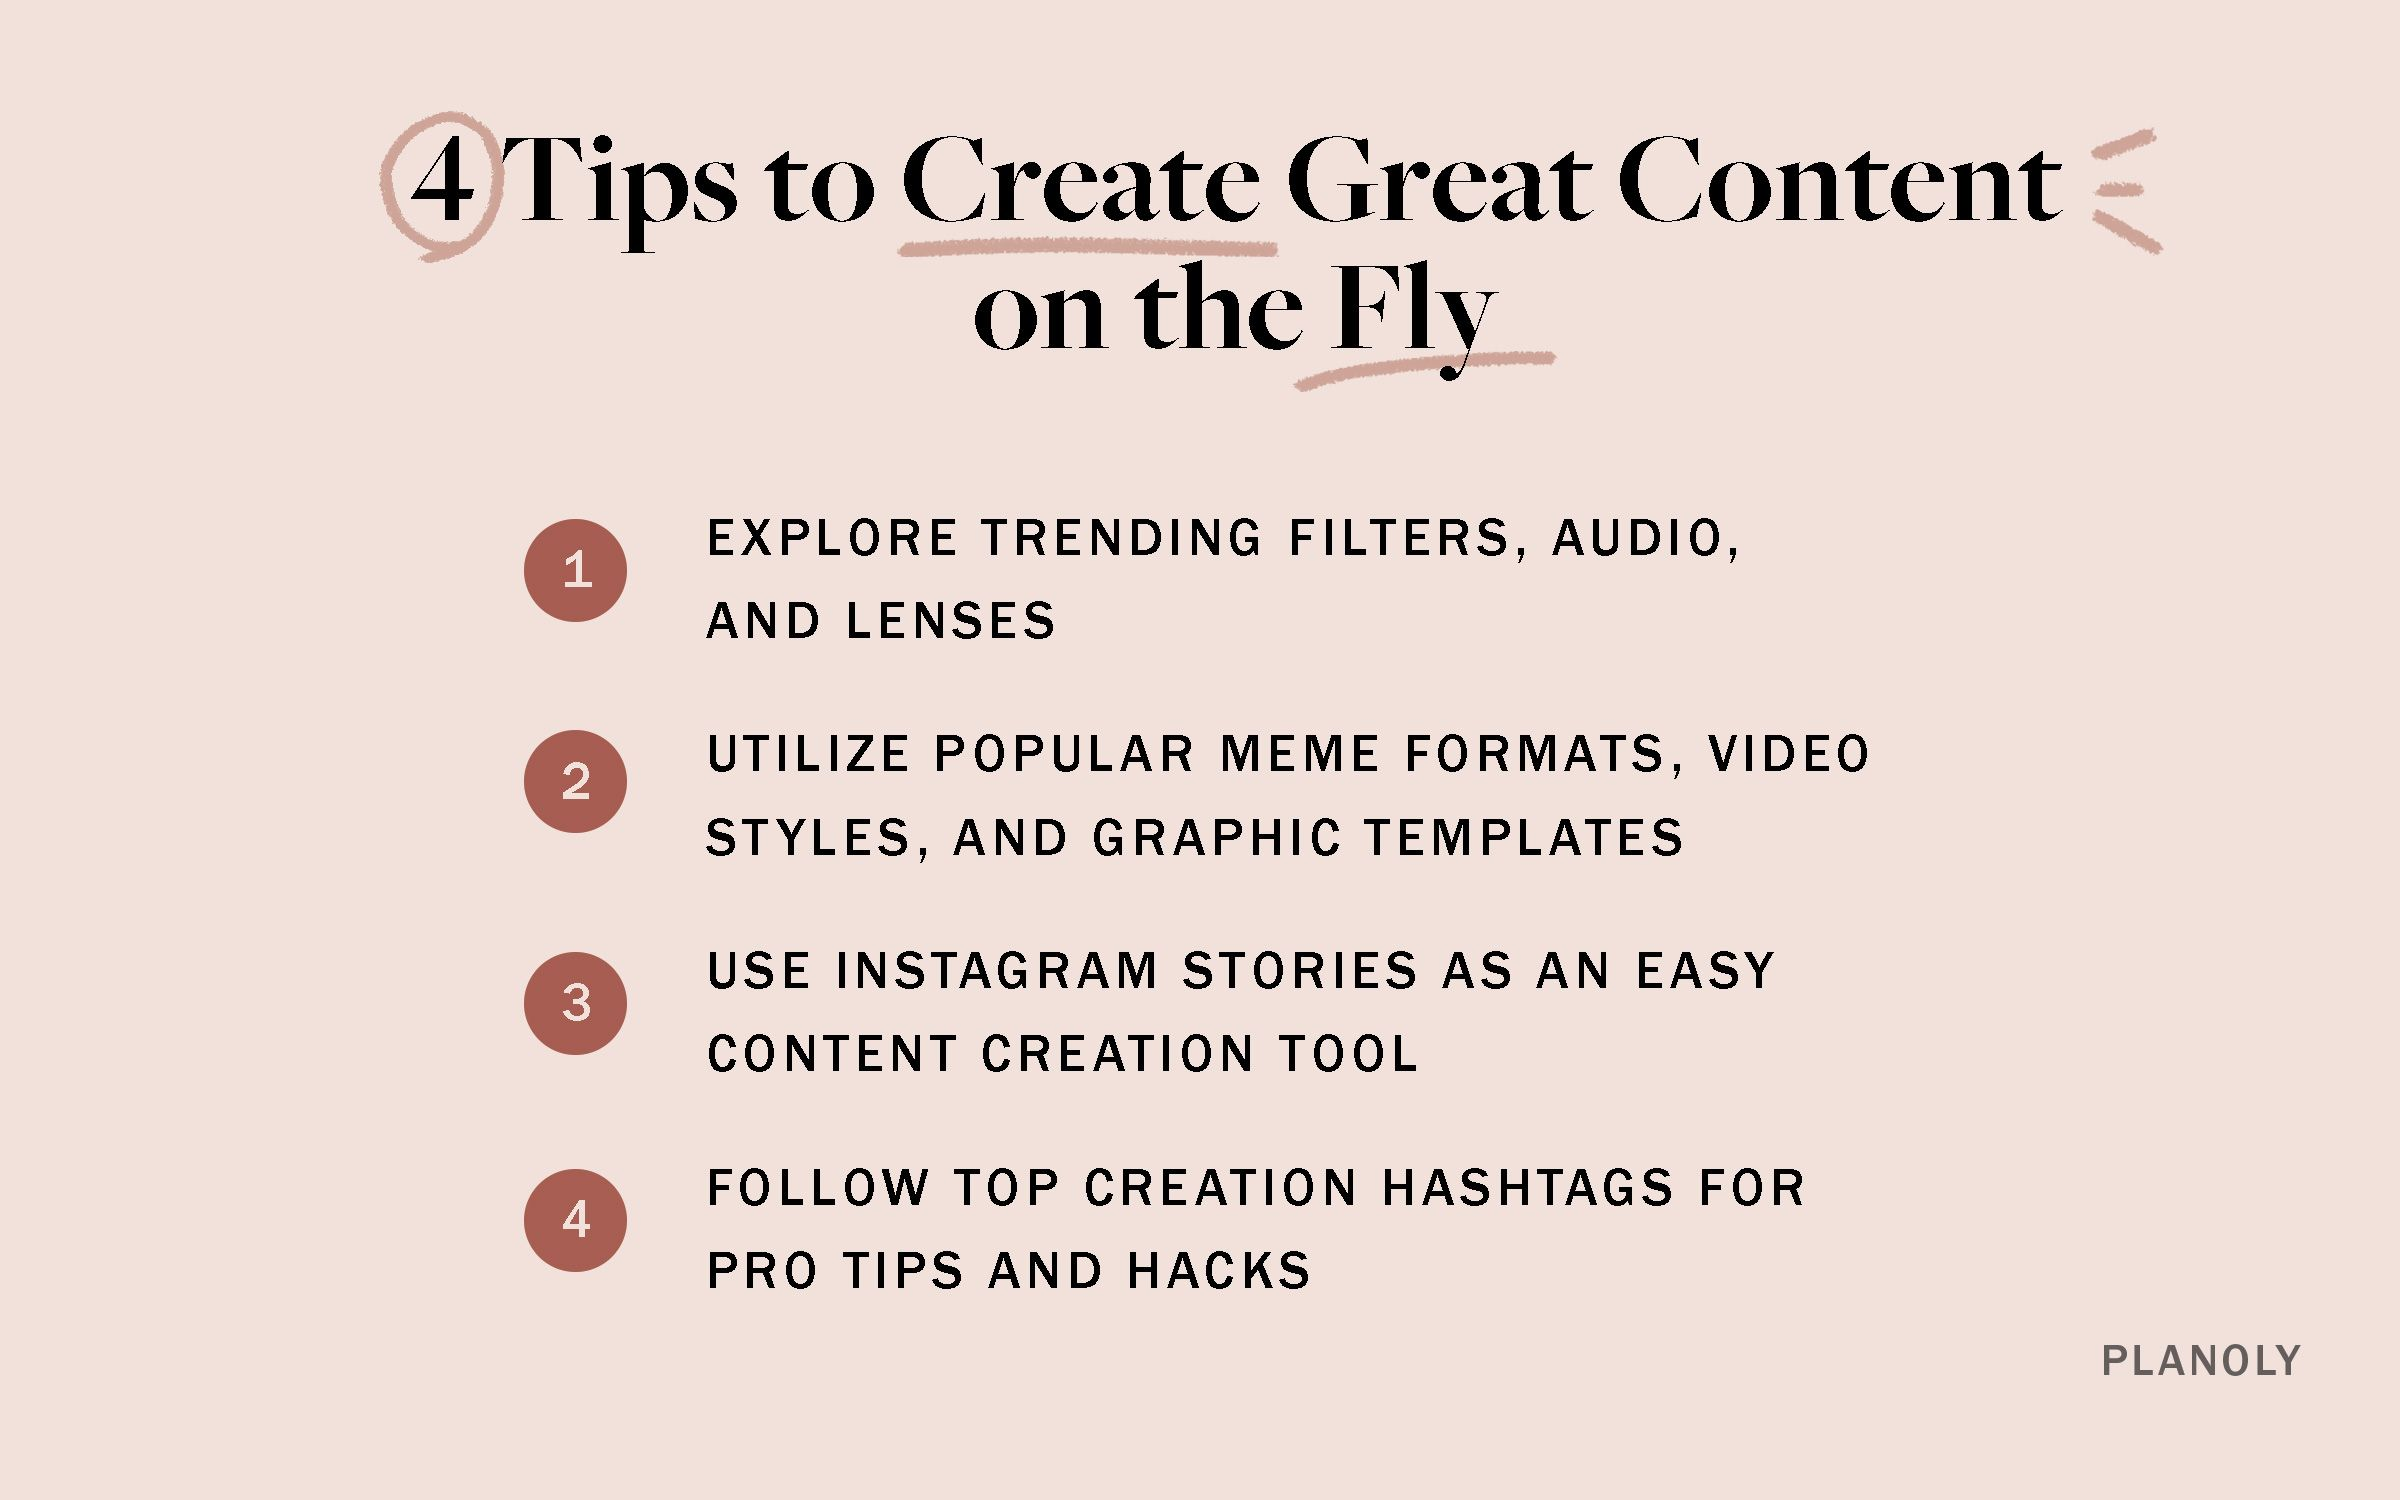 PLANOLY - Blog - 4 Tips to Create Great Content on the Fly - Horizontal - 1